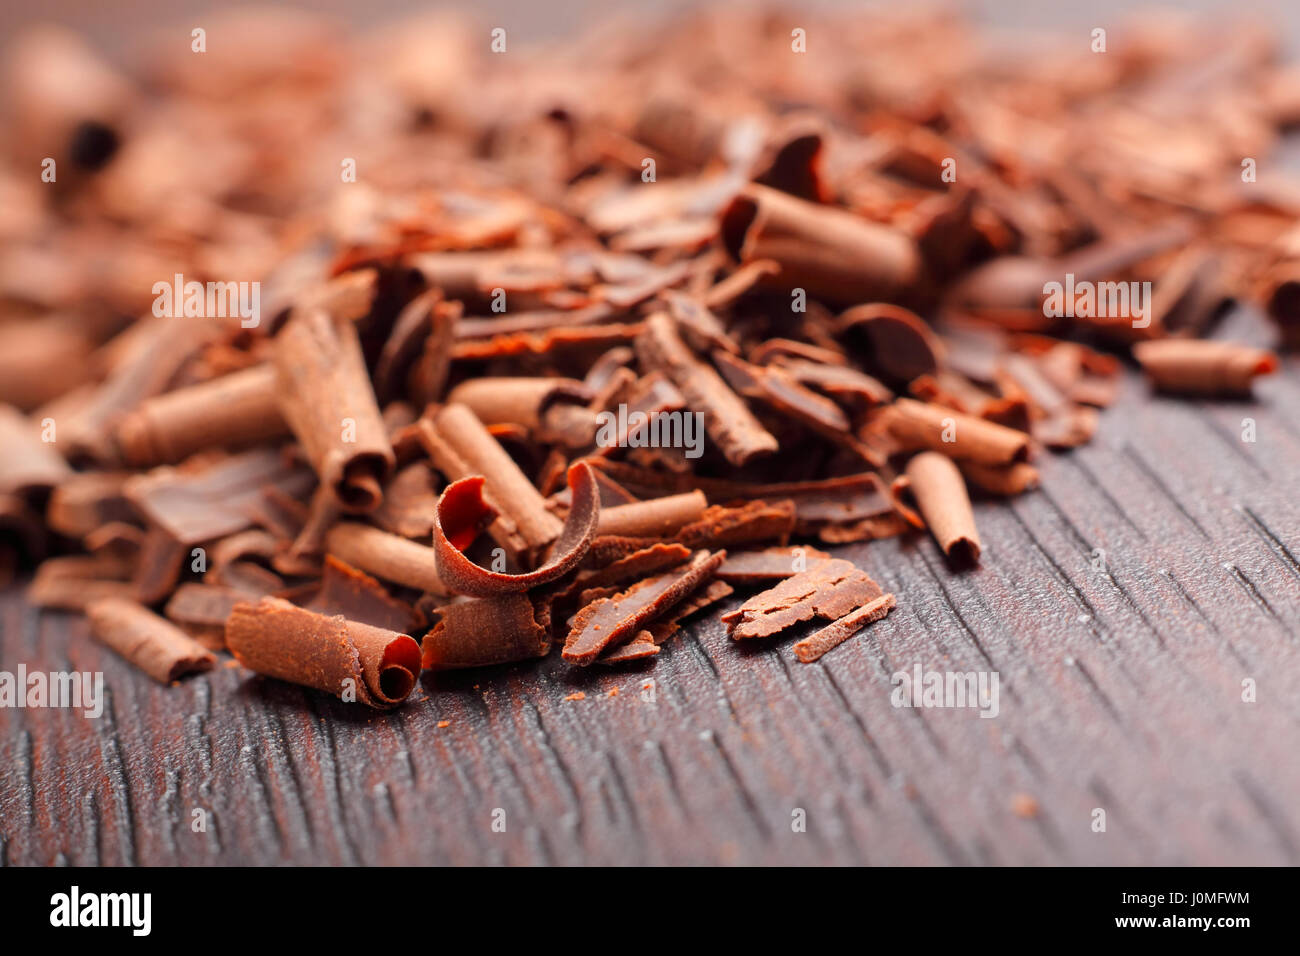 Chocolate curls on dark table. Close-up photo. - Stock Image